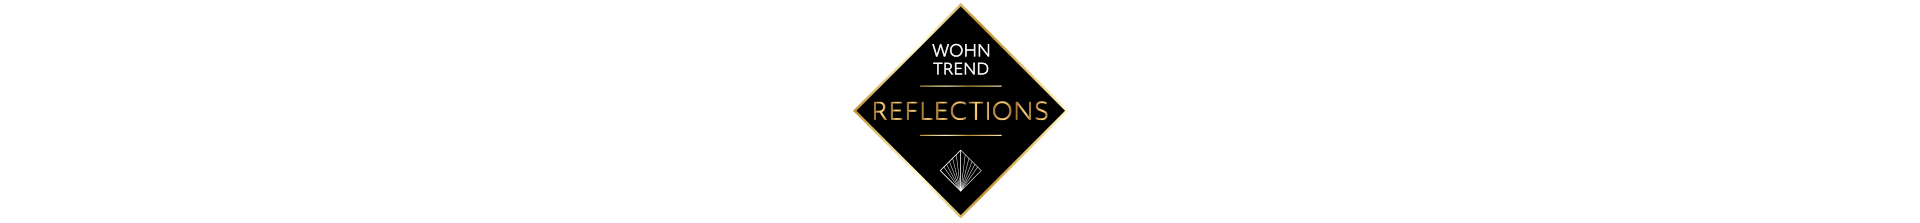 Wohntrend Reflections